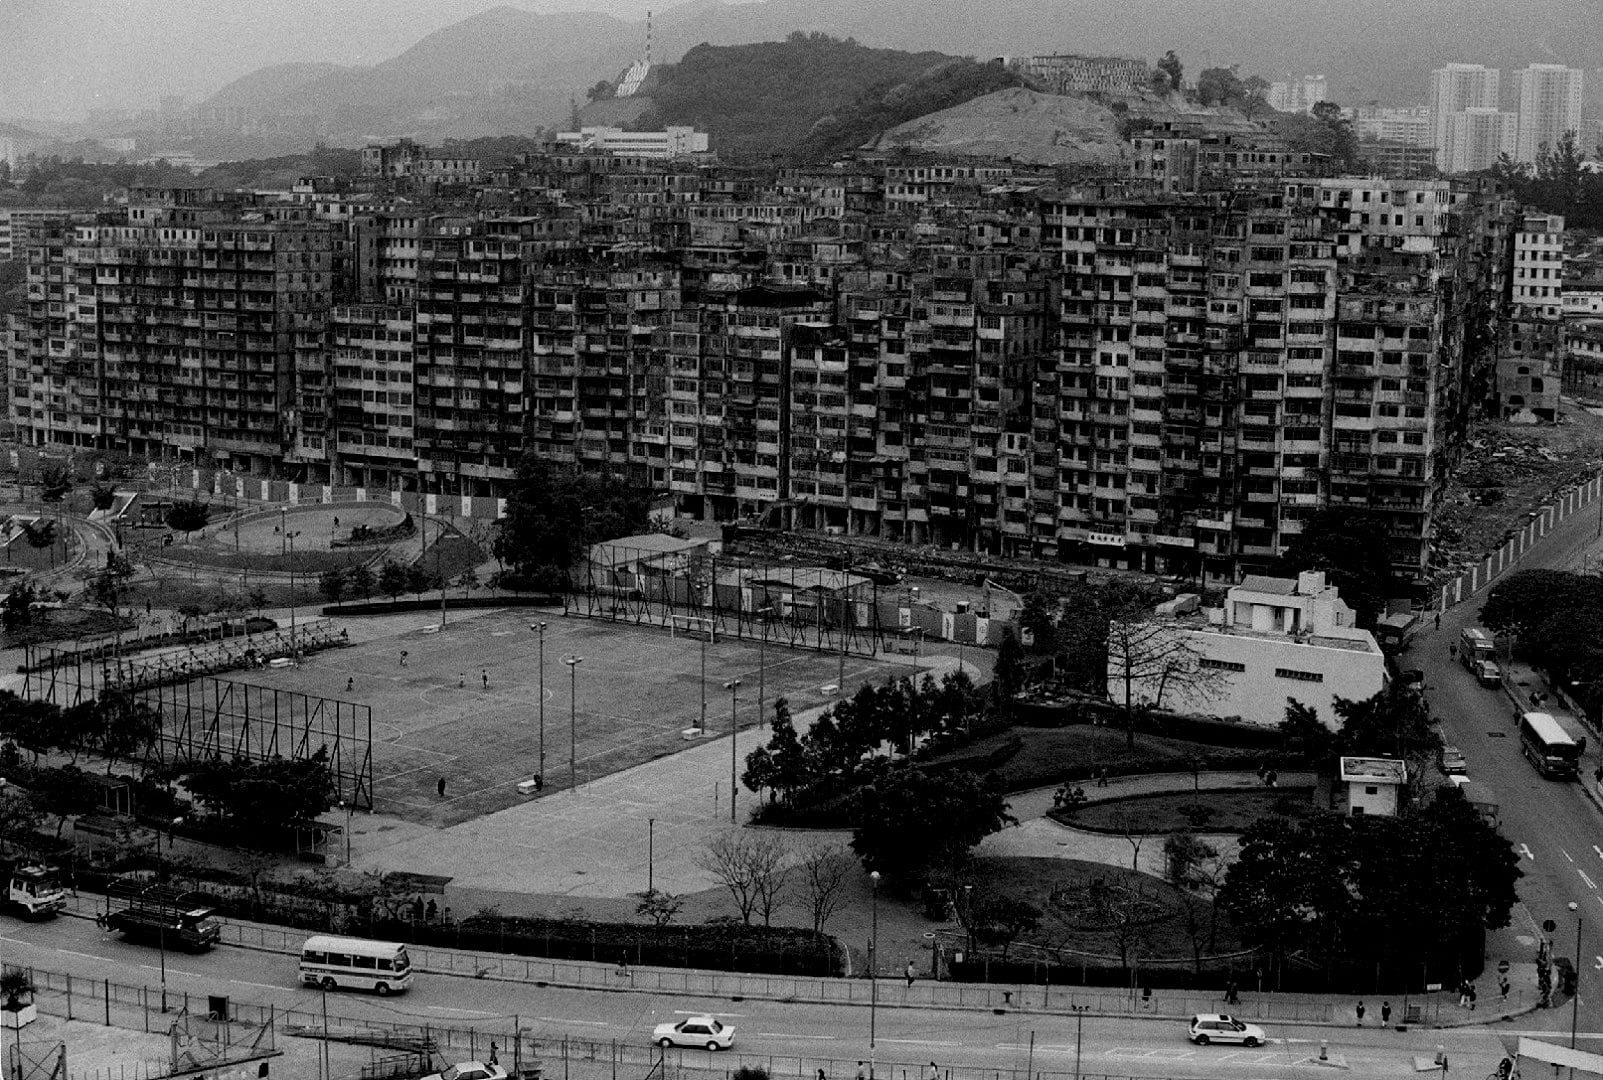 Kowloon Walled City 1993 before Demolition - SCMP.com